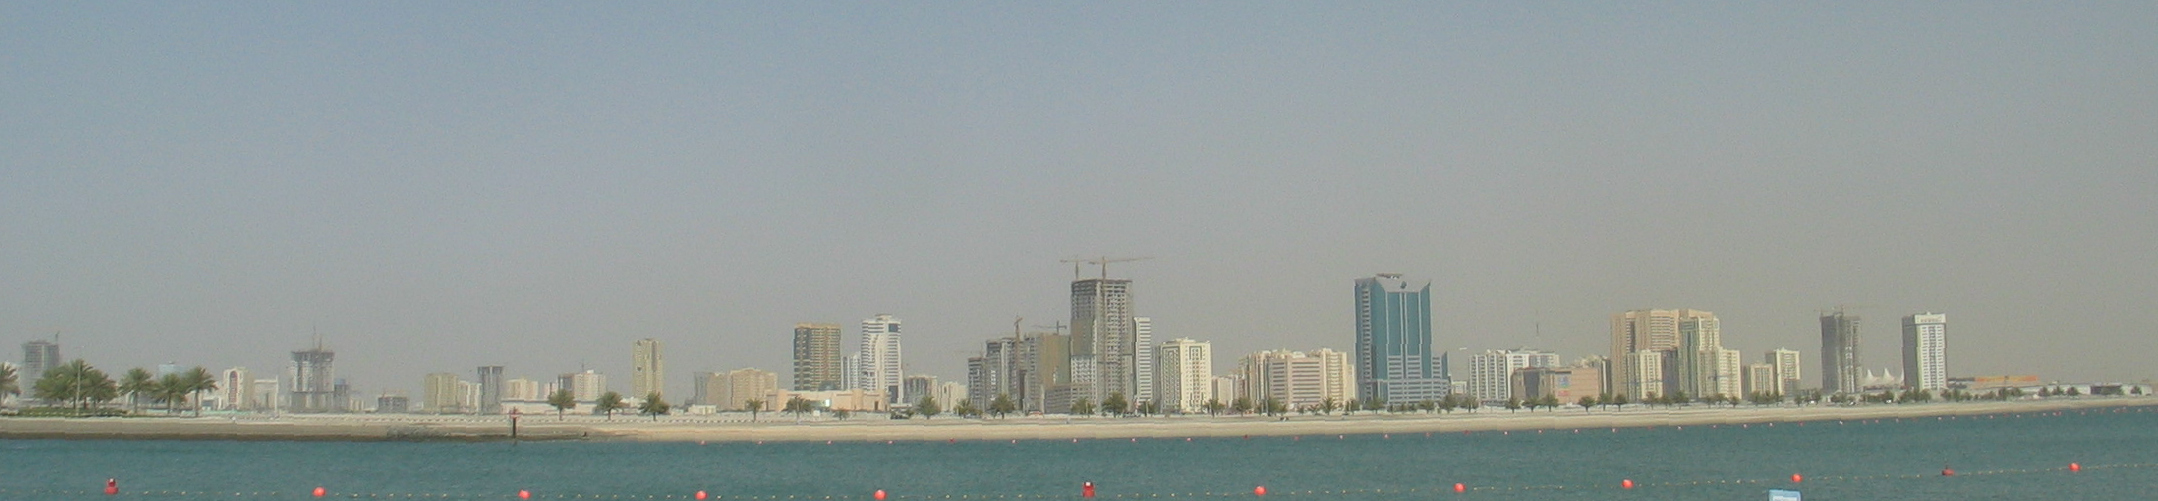 Sharjah Panorama.jpg